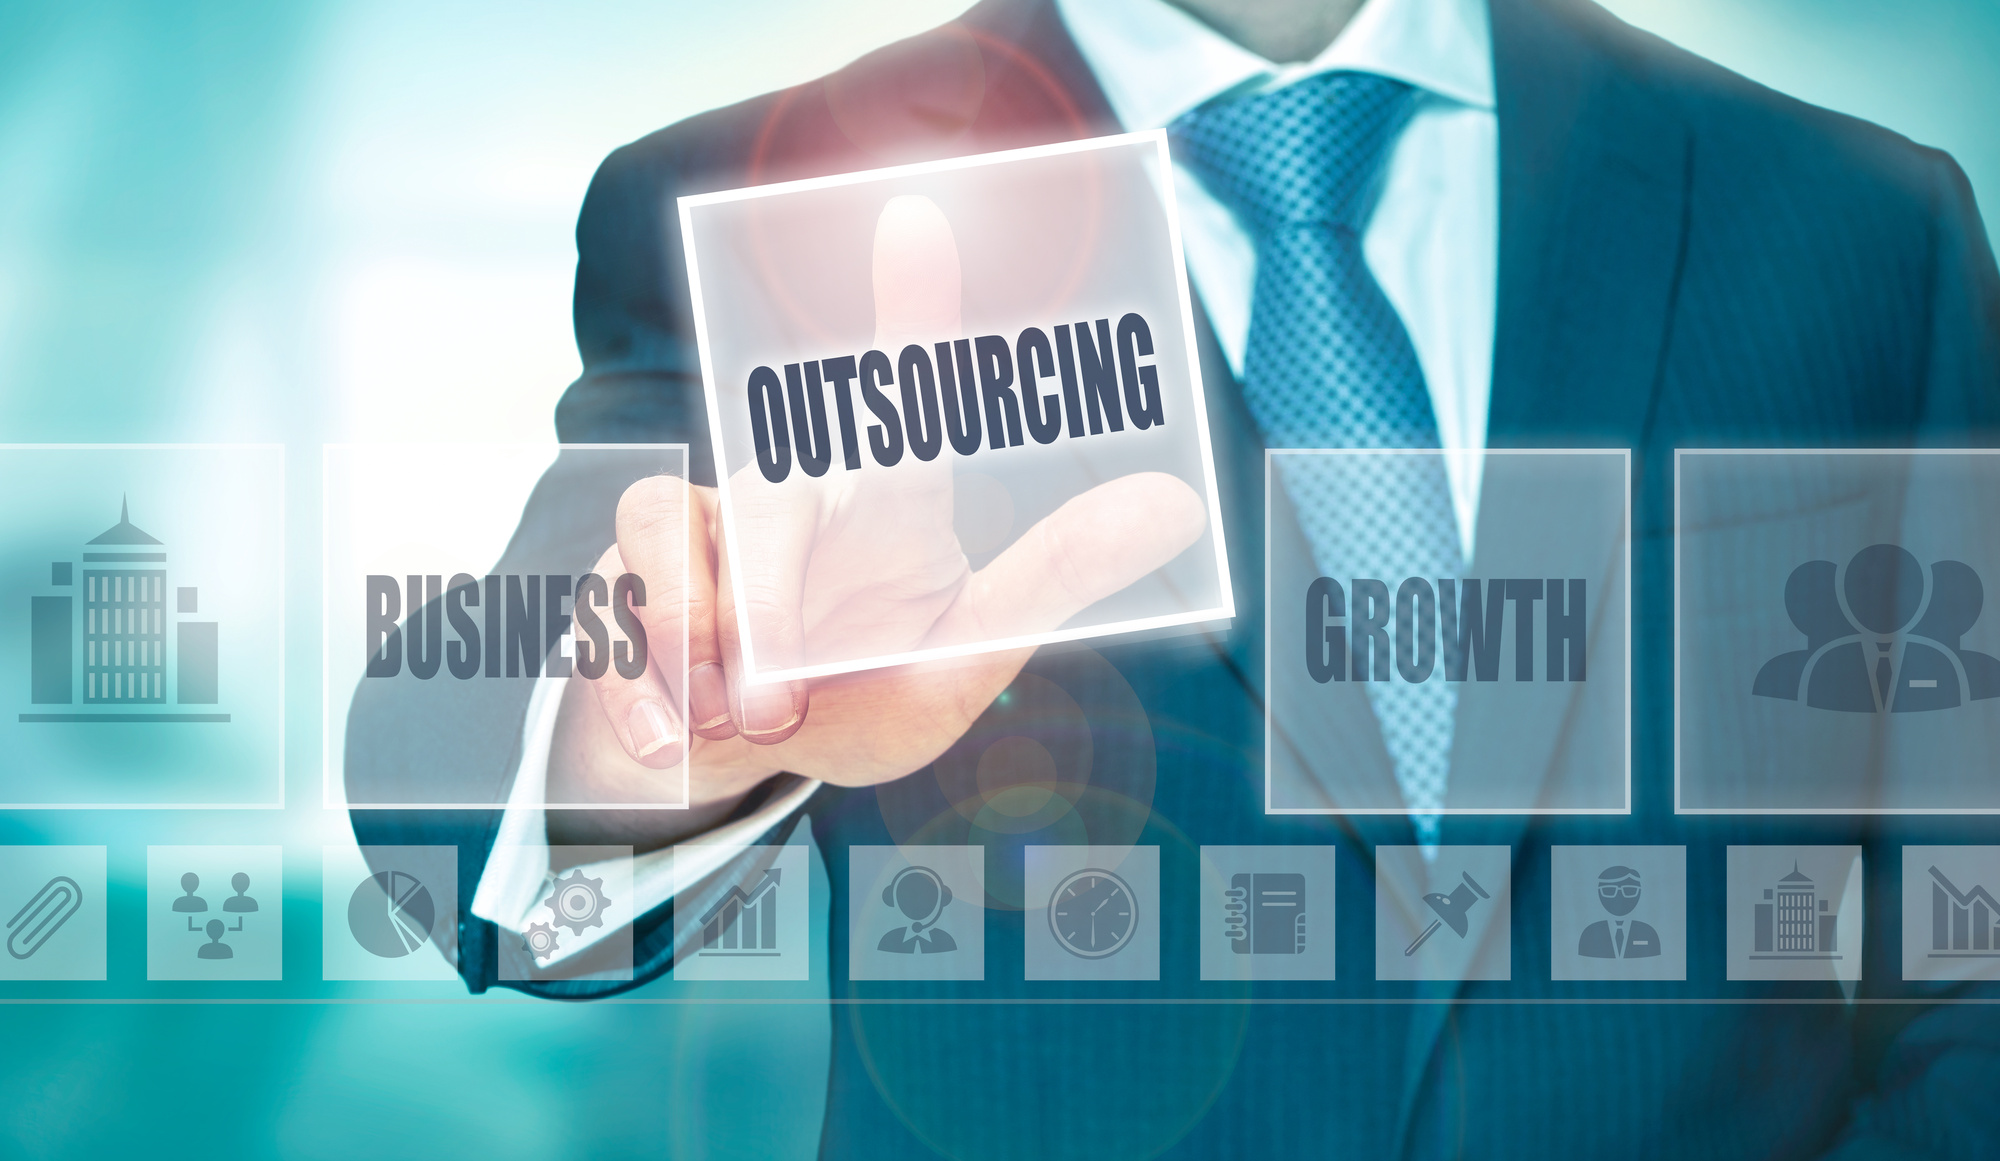 IT Outsourcing Visualized